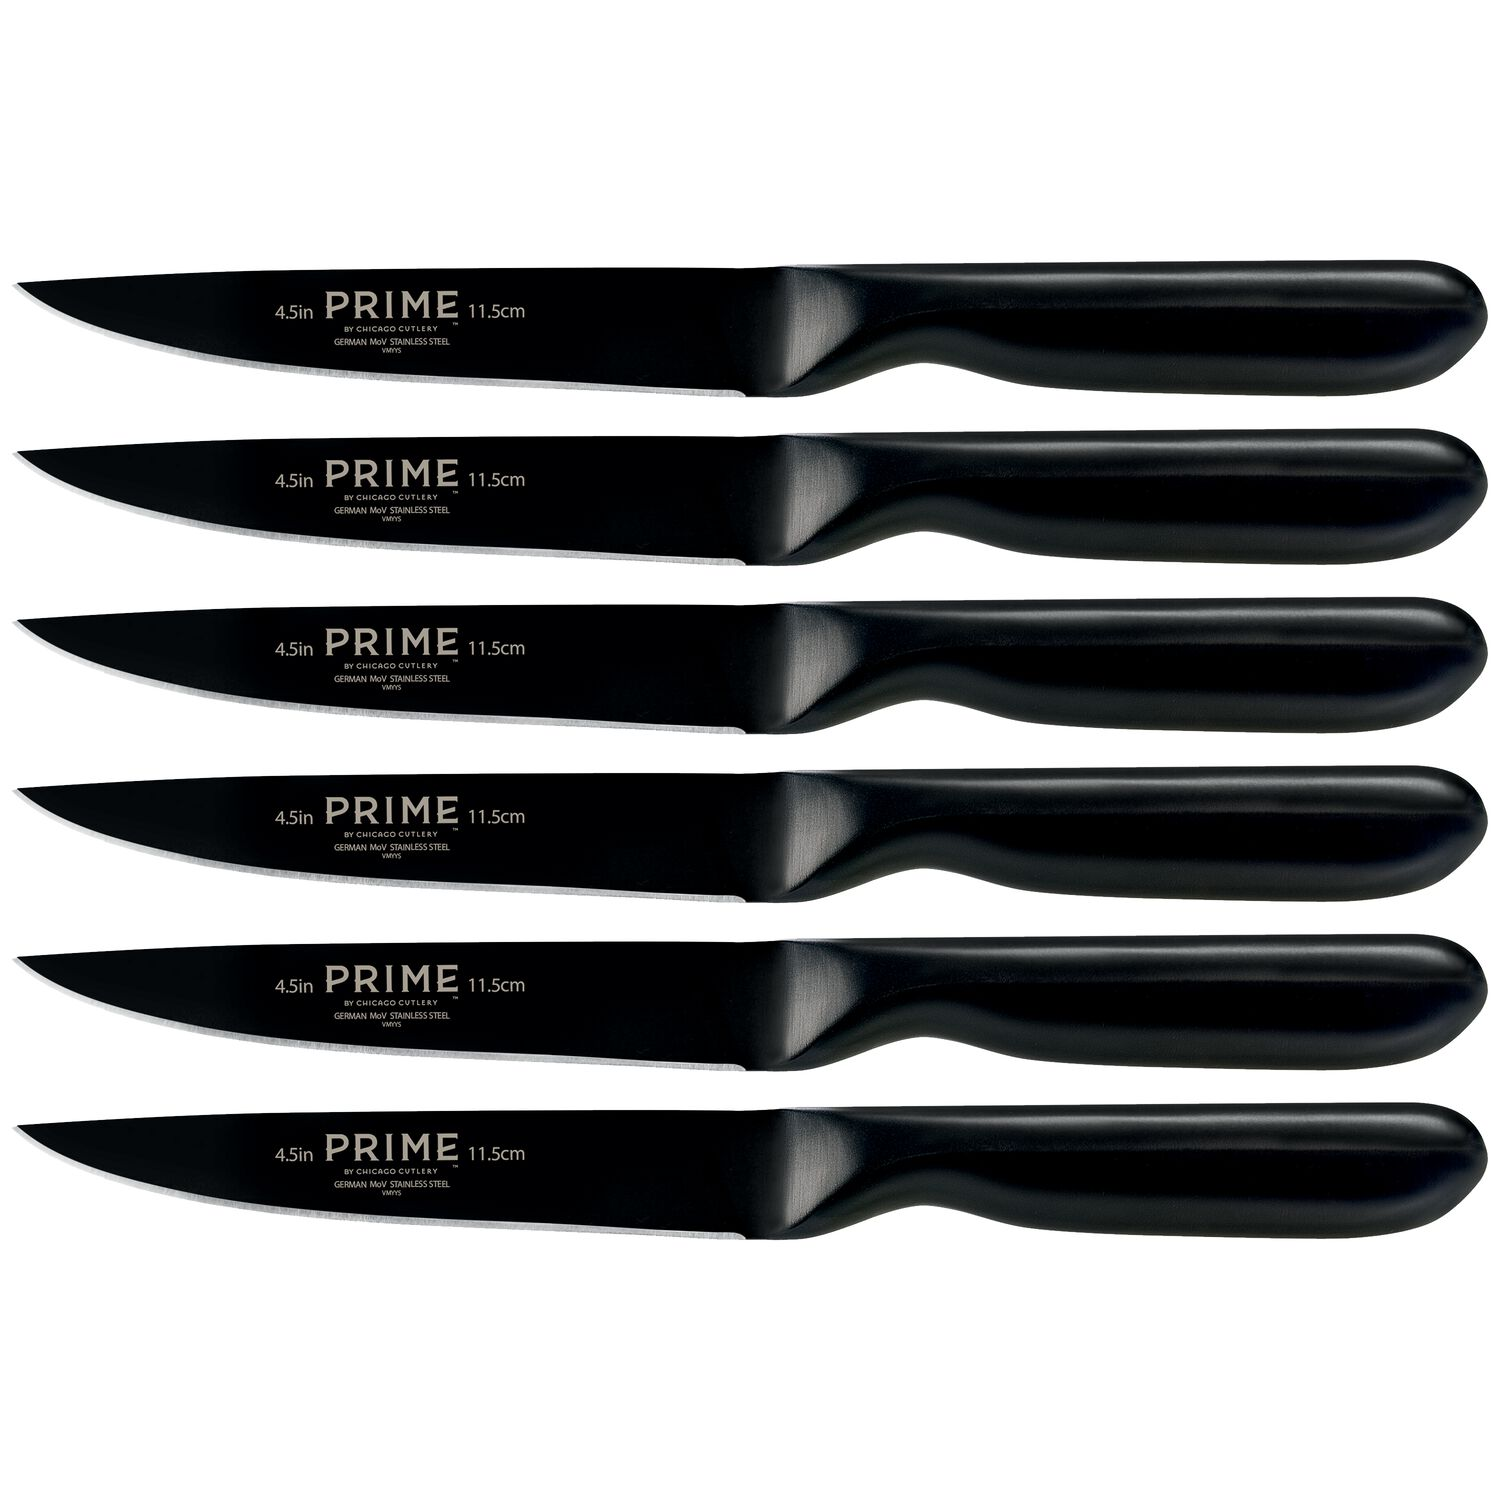 prime by chicago cutlery black oxide 6 pc steak knife set shop black oxide 6 pc steak knife set loading zoom